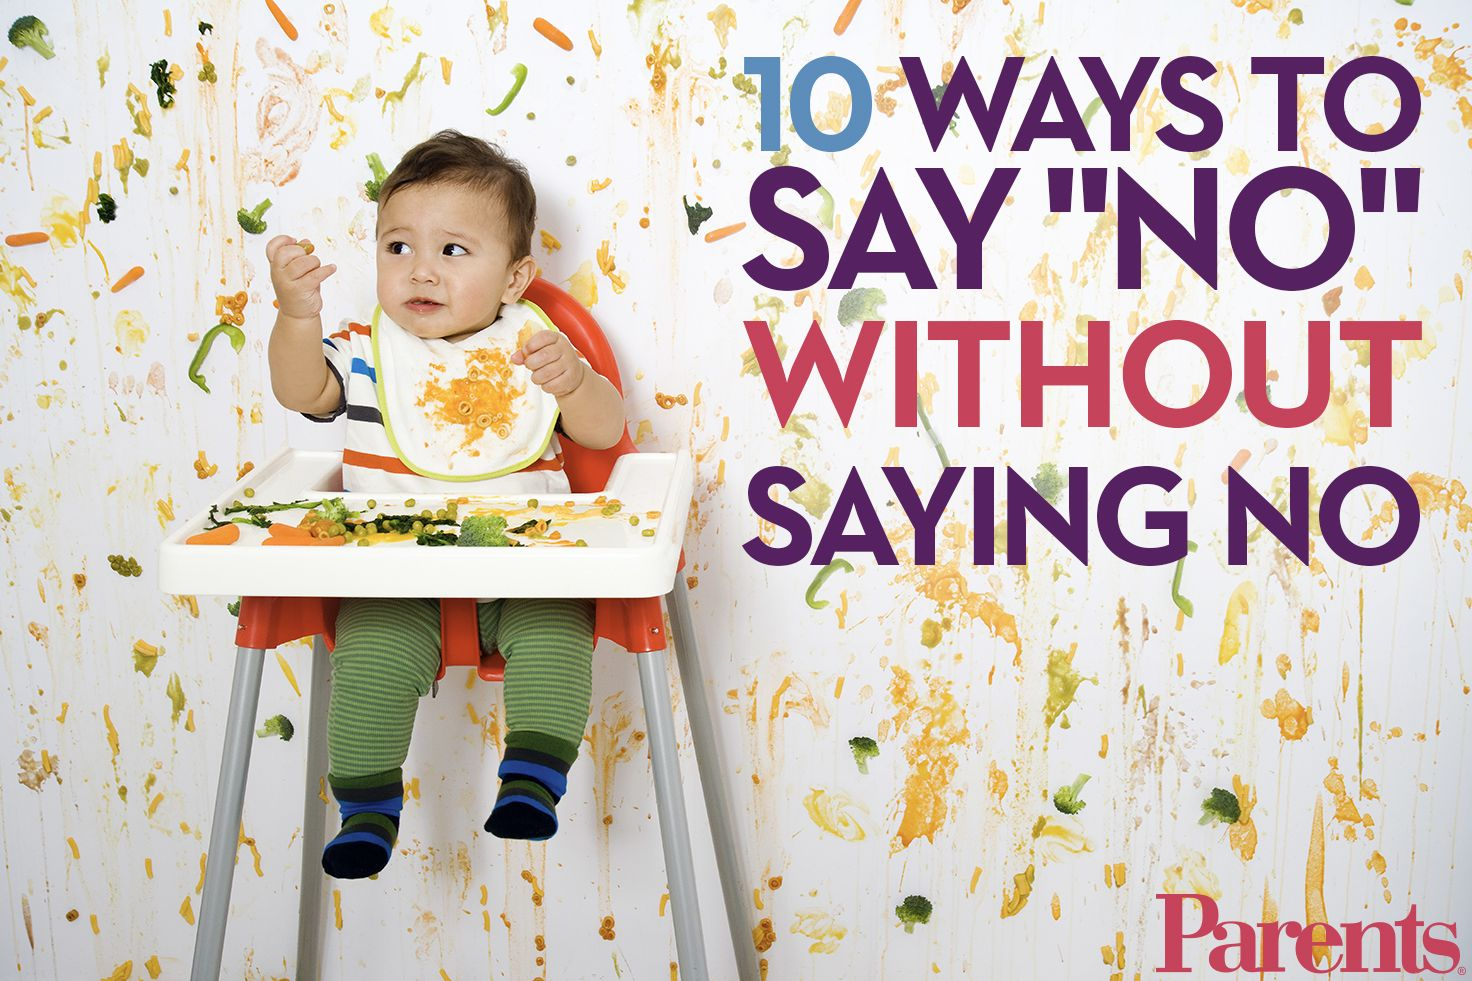 10 Ways To Say No Without Saying No